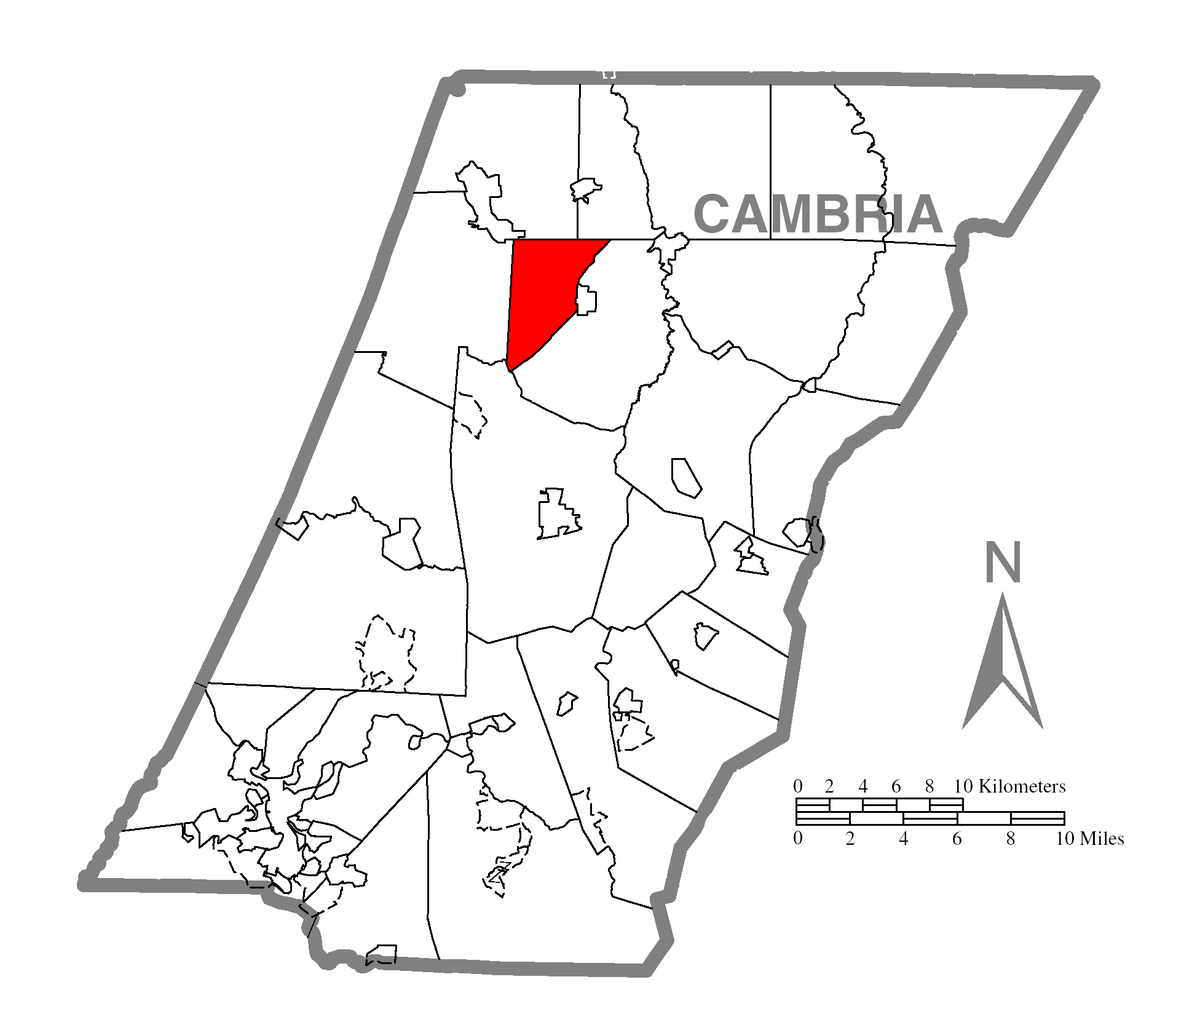 west carroll county Find a list of dmv office locations in west carroll county, louisiana.